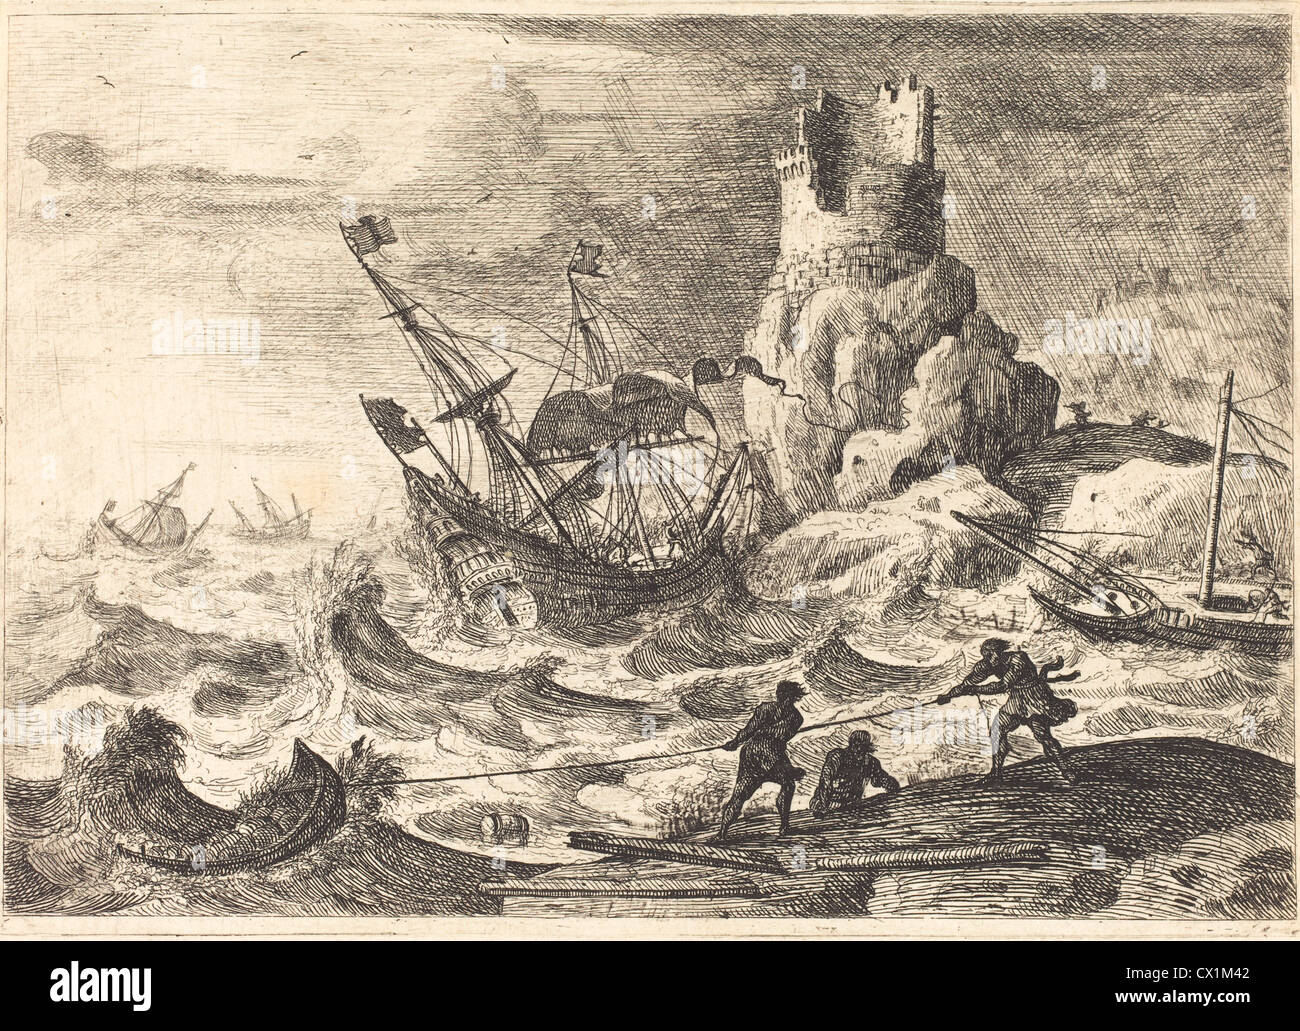 Claude Lorrain (French, 1604/1605 - 1682 ), The Shipwreck (Le naufrage), c. 1638/1641, etching - Stock Image